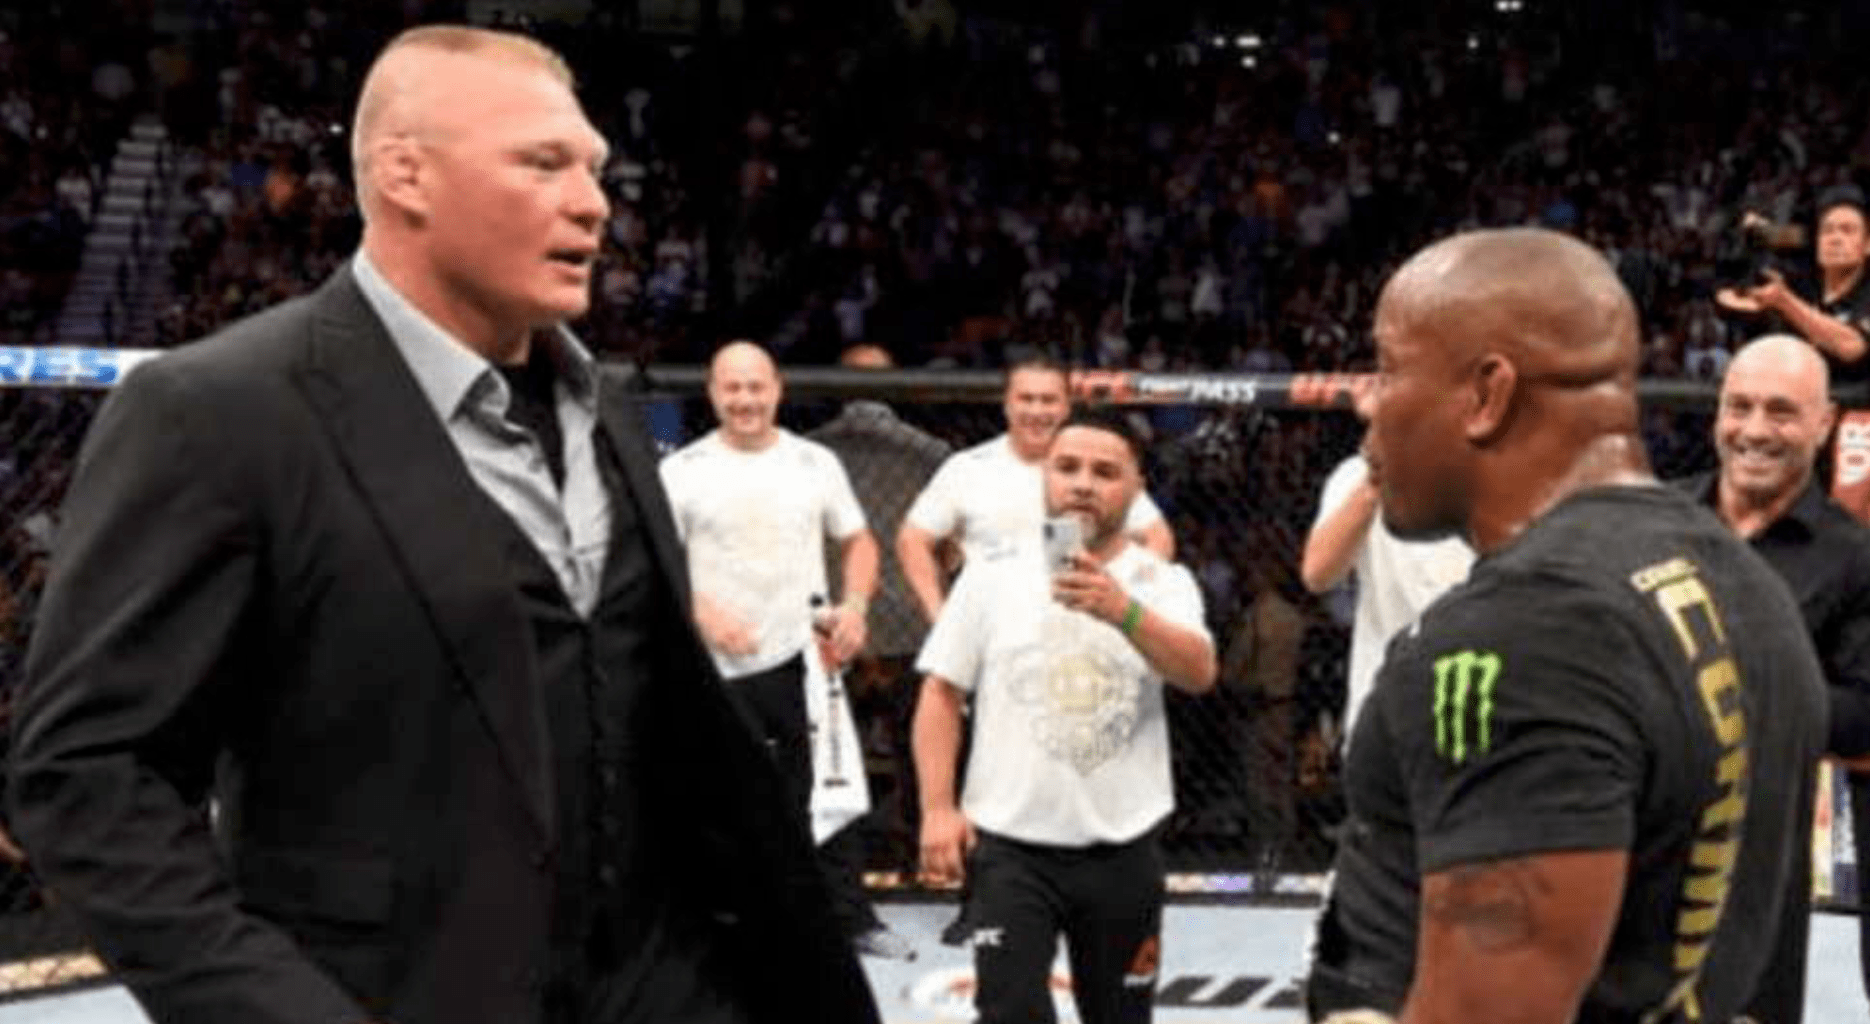 Daniel Cormier Tells Dana White To Hurry Up And Book Brock Lesnar Fight